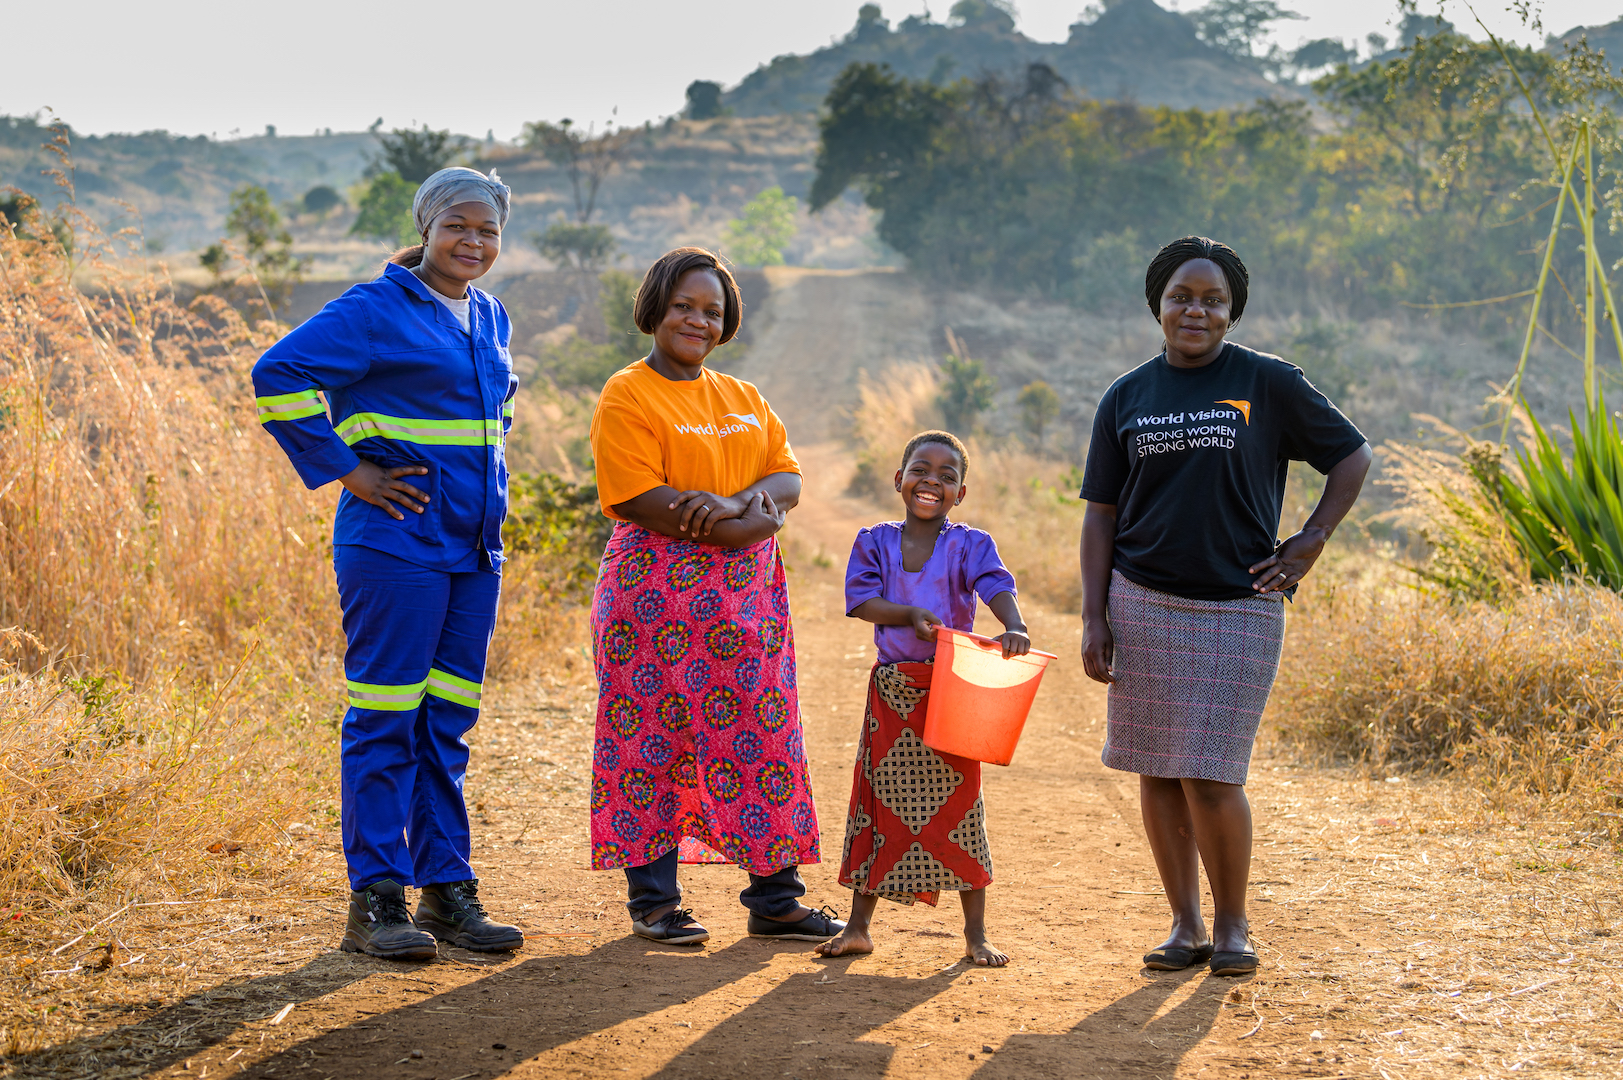 World Vision staff stand next to Ireen in Malawi.